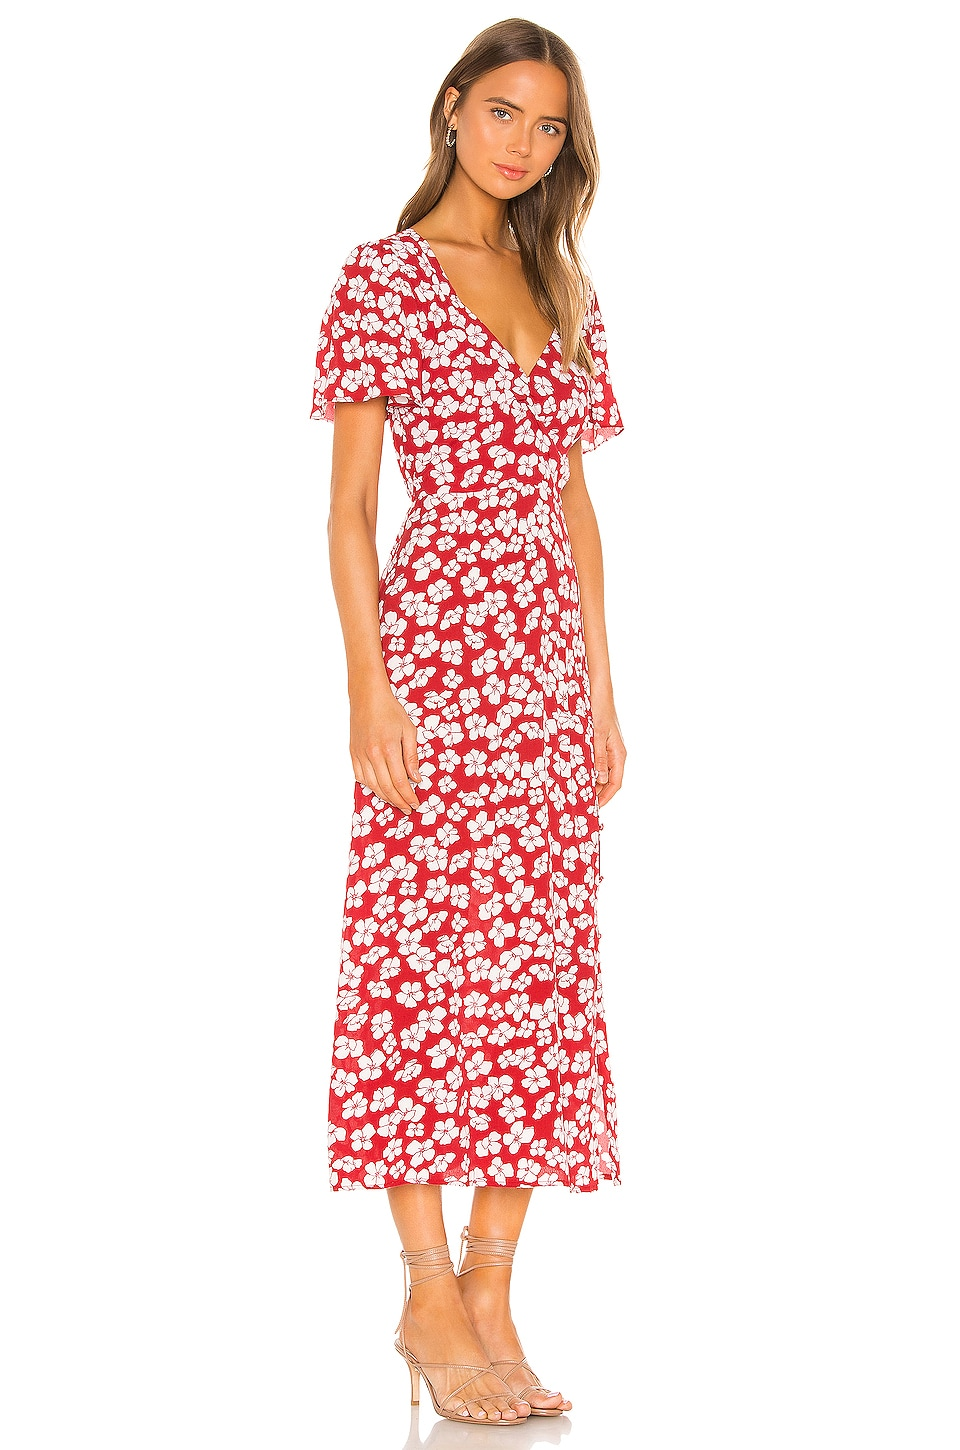 Between You And I Midi Dress, view 2, click to view large image.